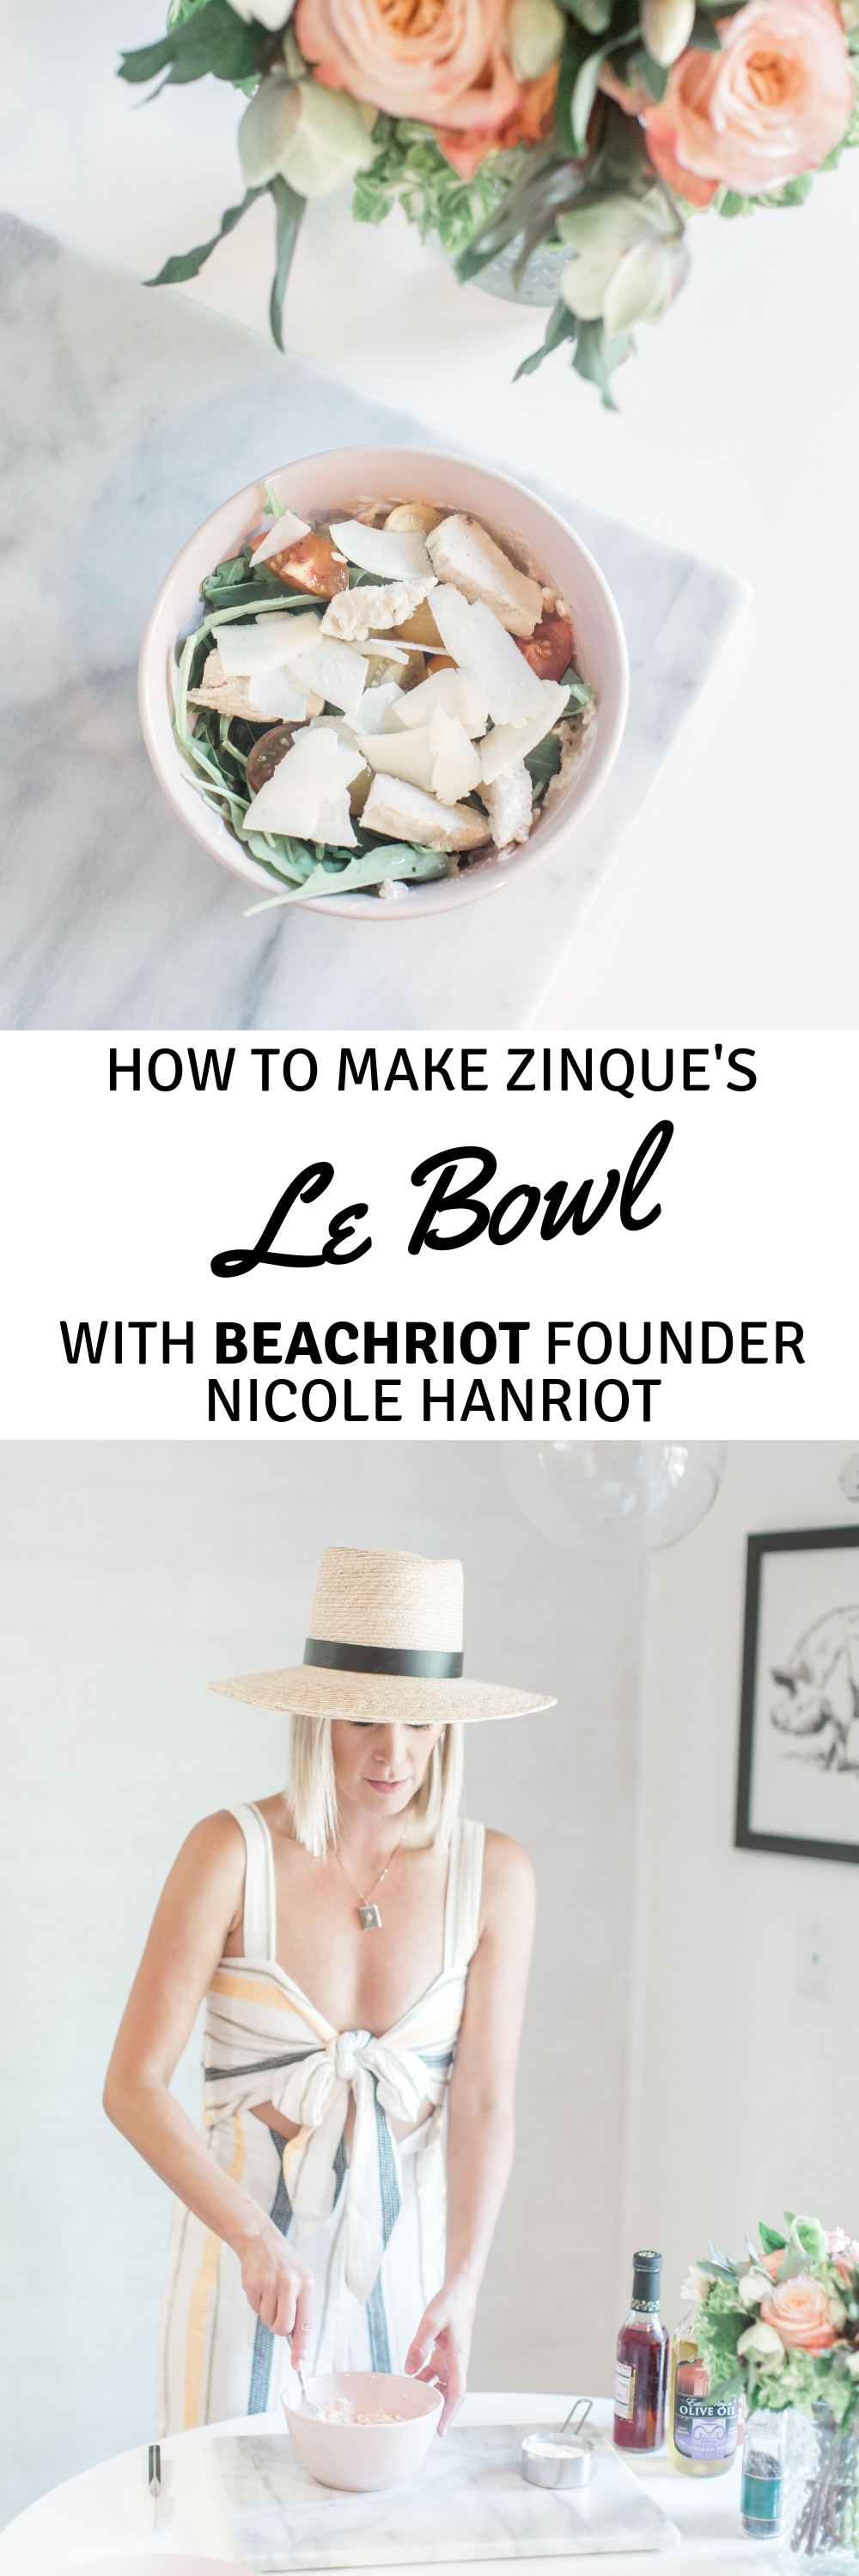 zinque's le bowl with beachriot